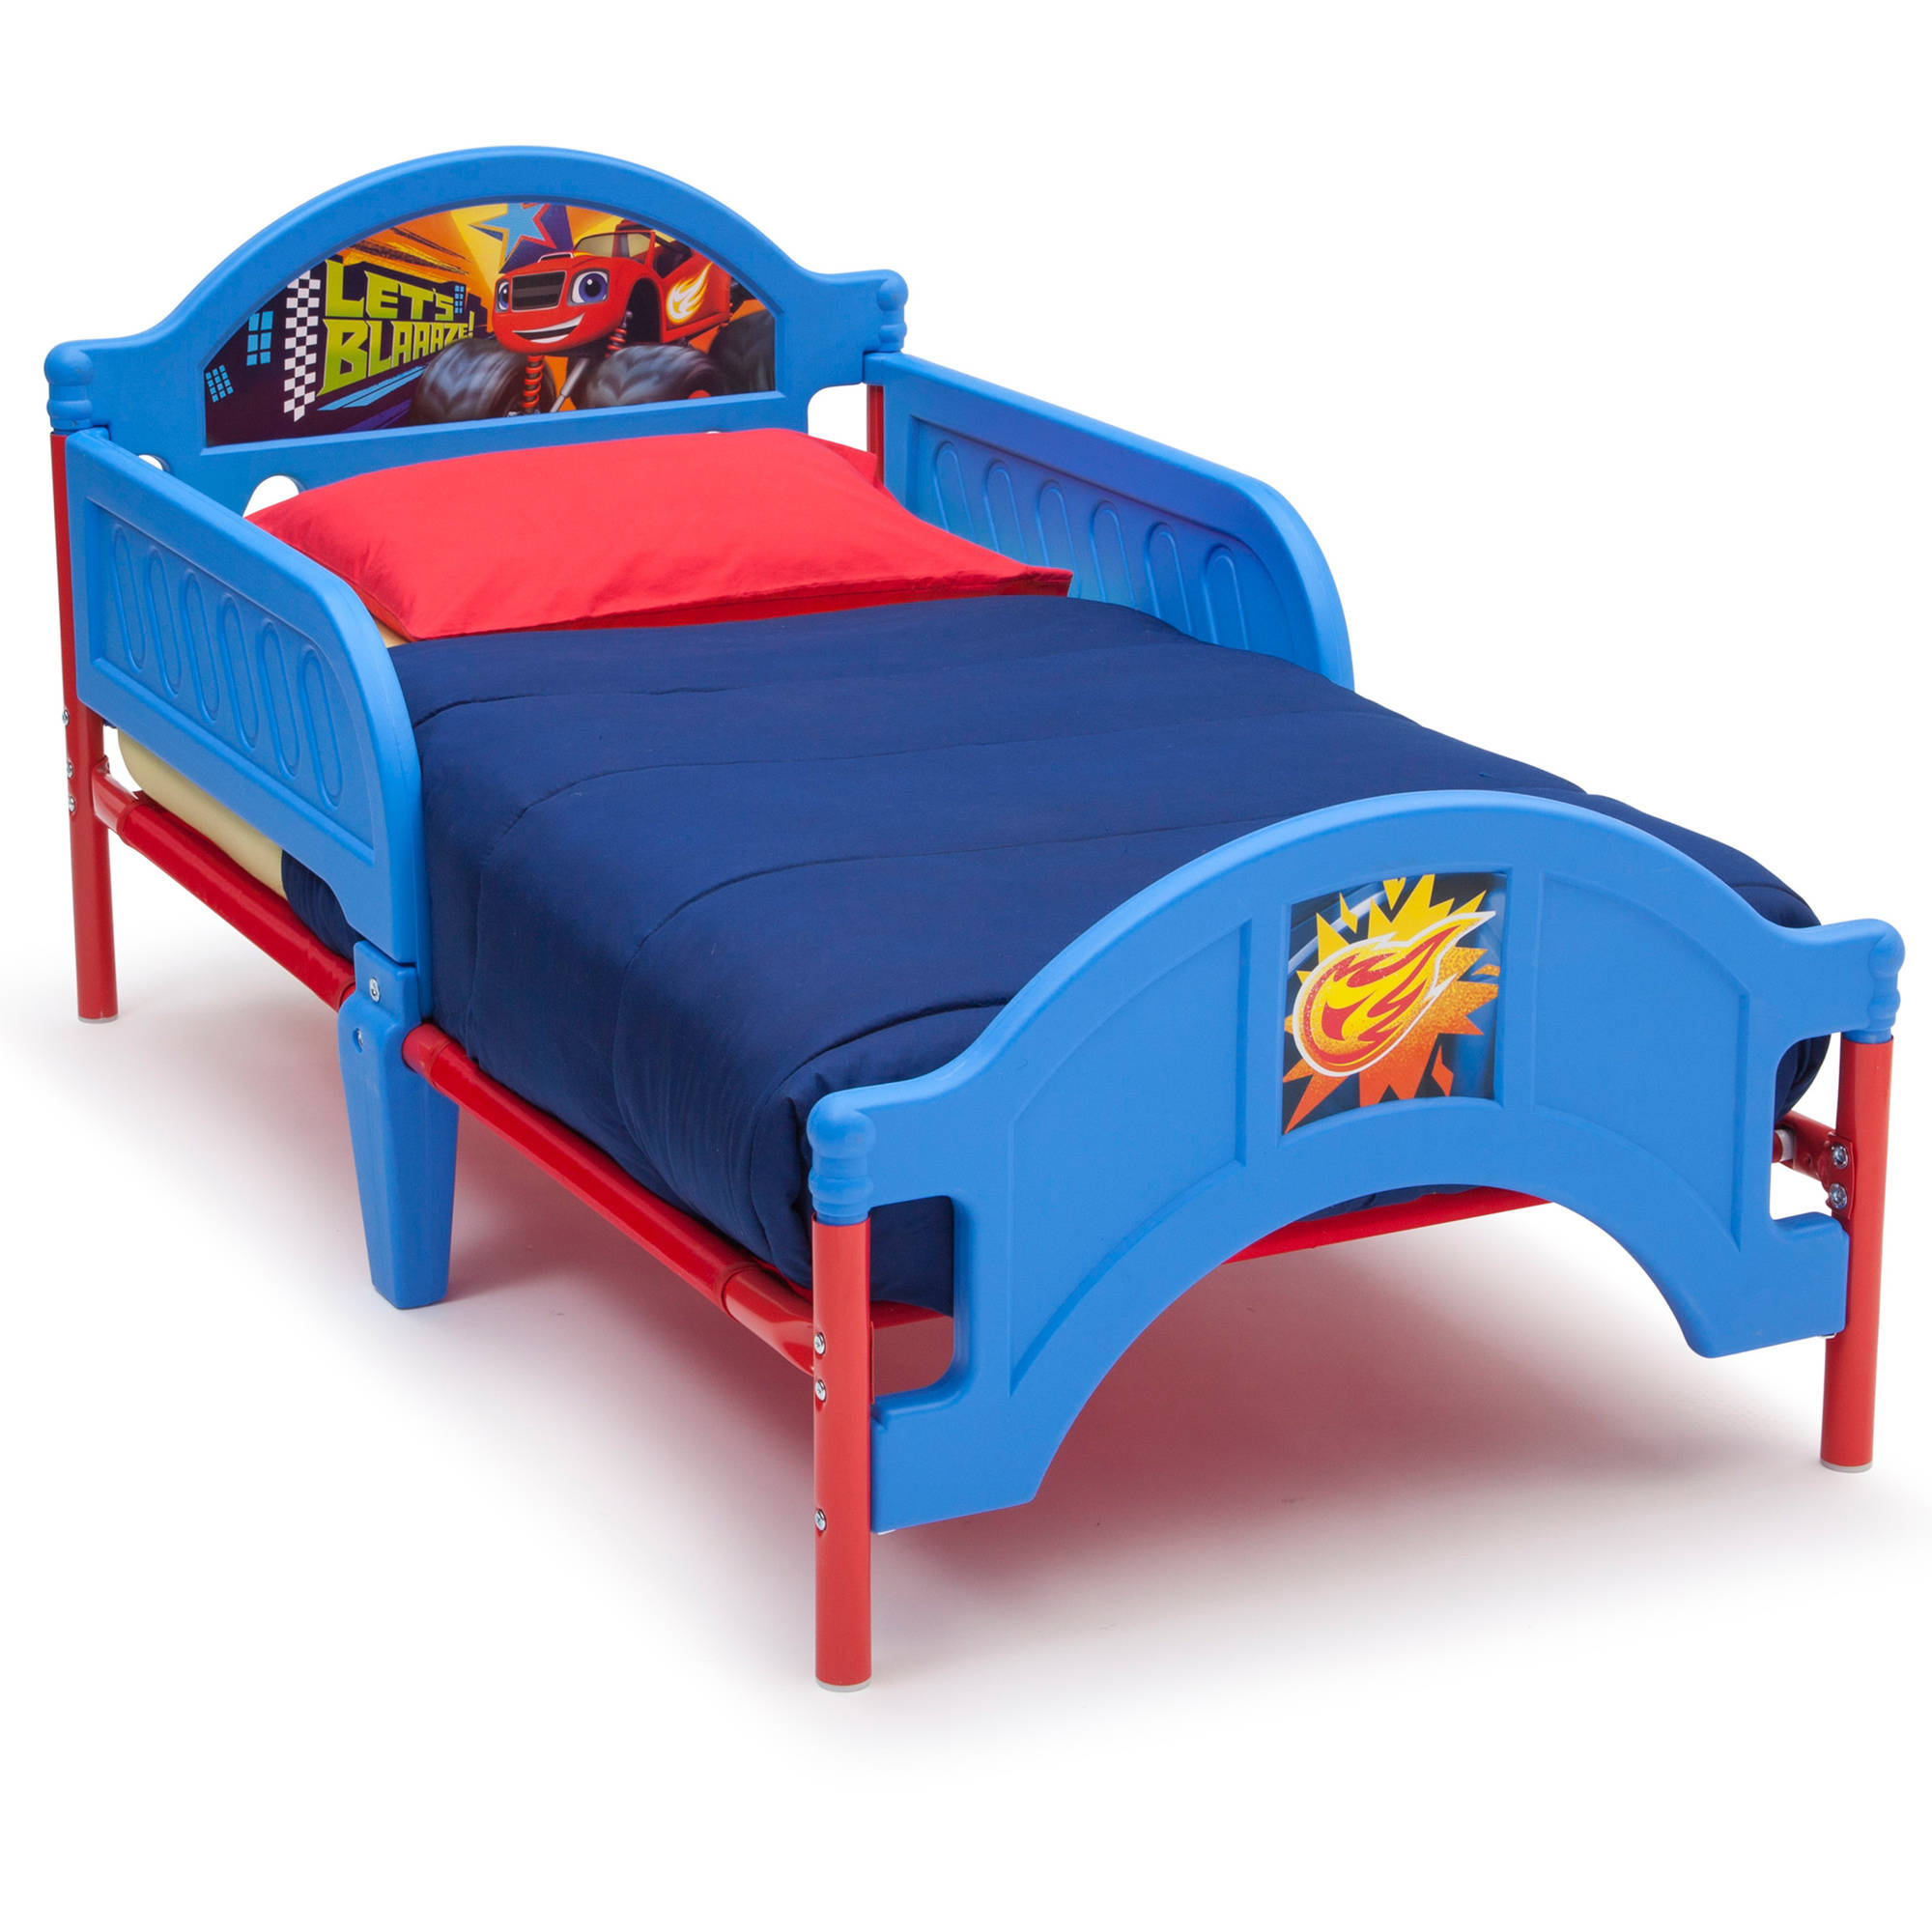 Blaze and the Monster Machines Plastic Toddler Bed by Delta Children